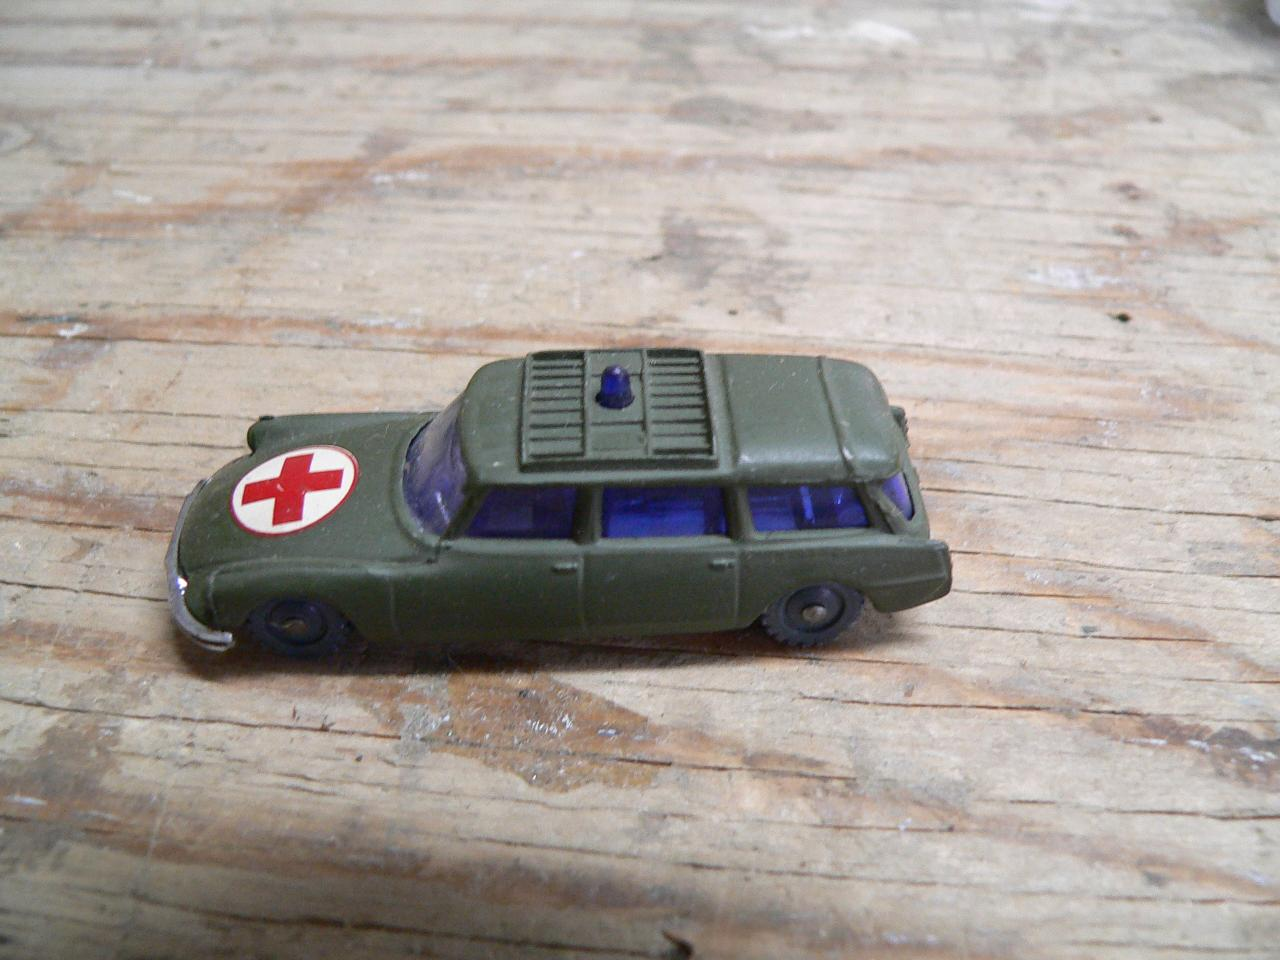 Citroen safari military ambulance # 4466.3